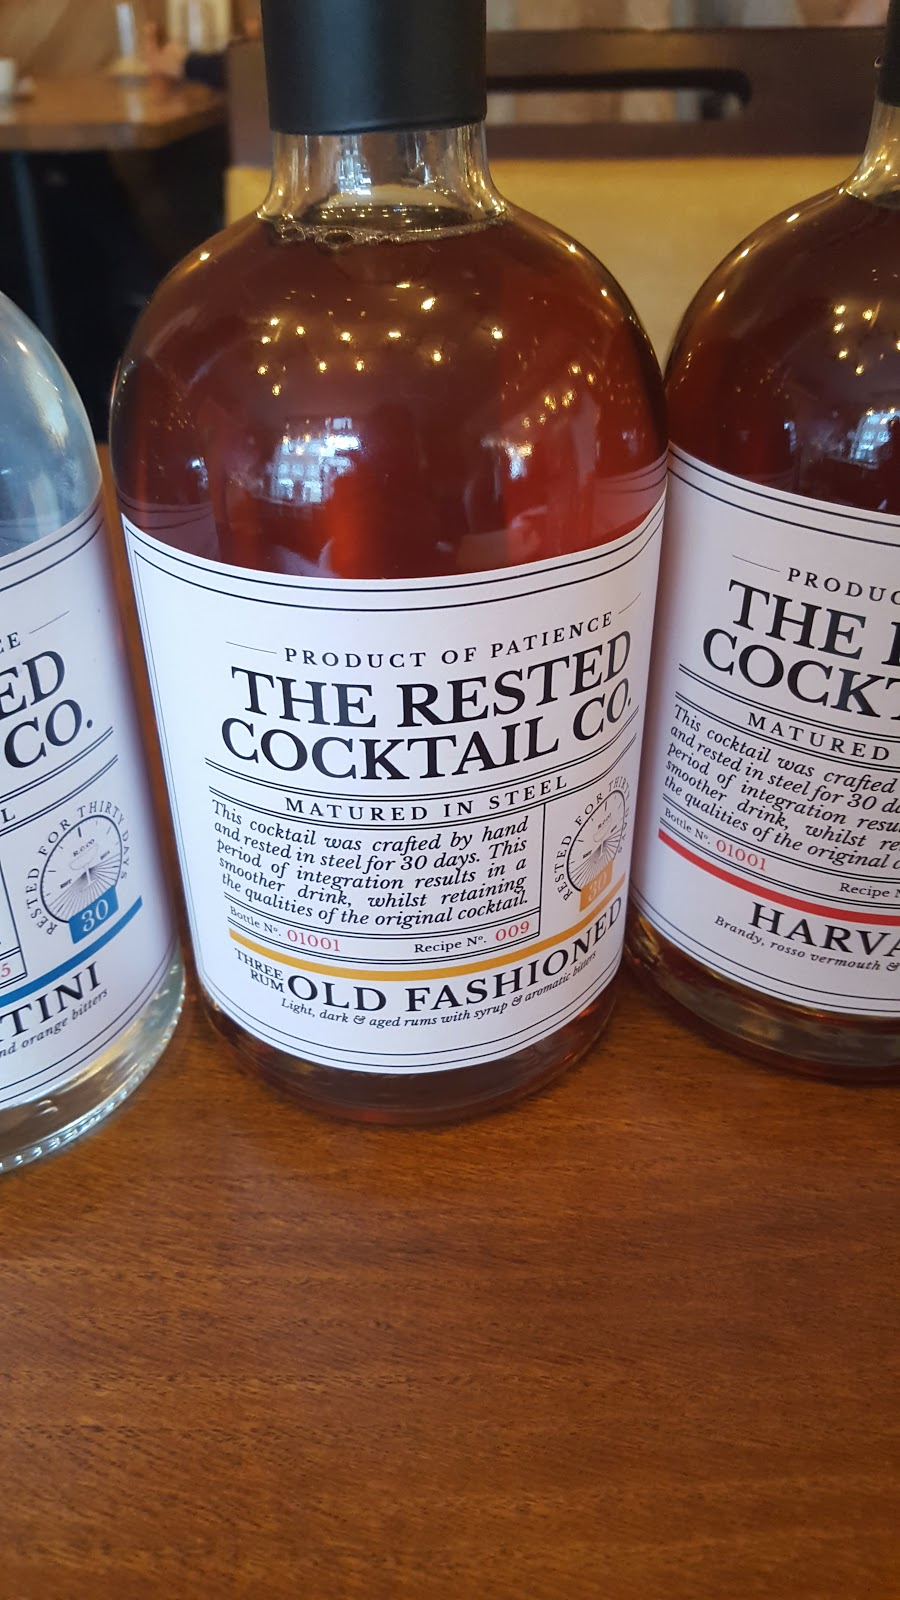 The Rested Cocktail Company